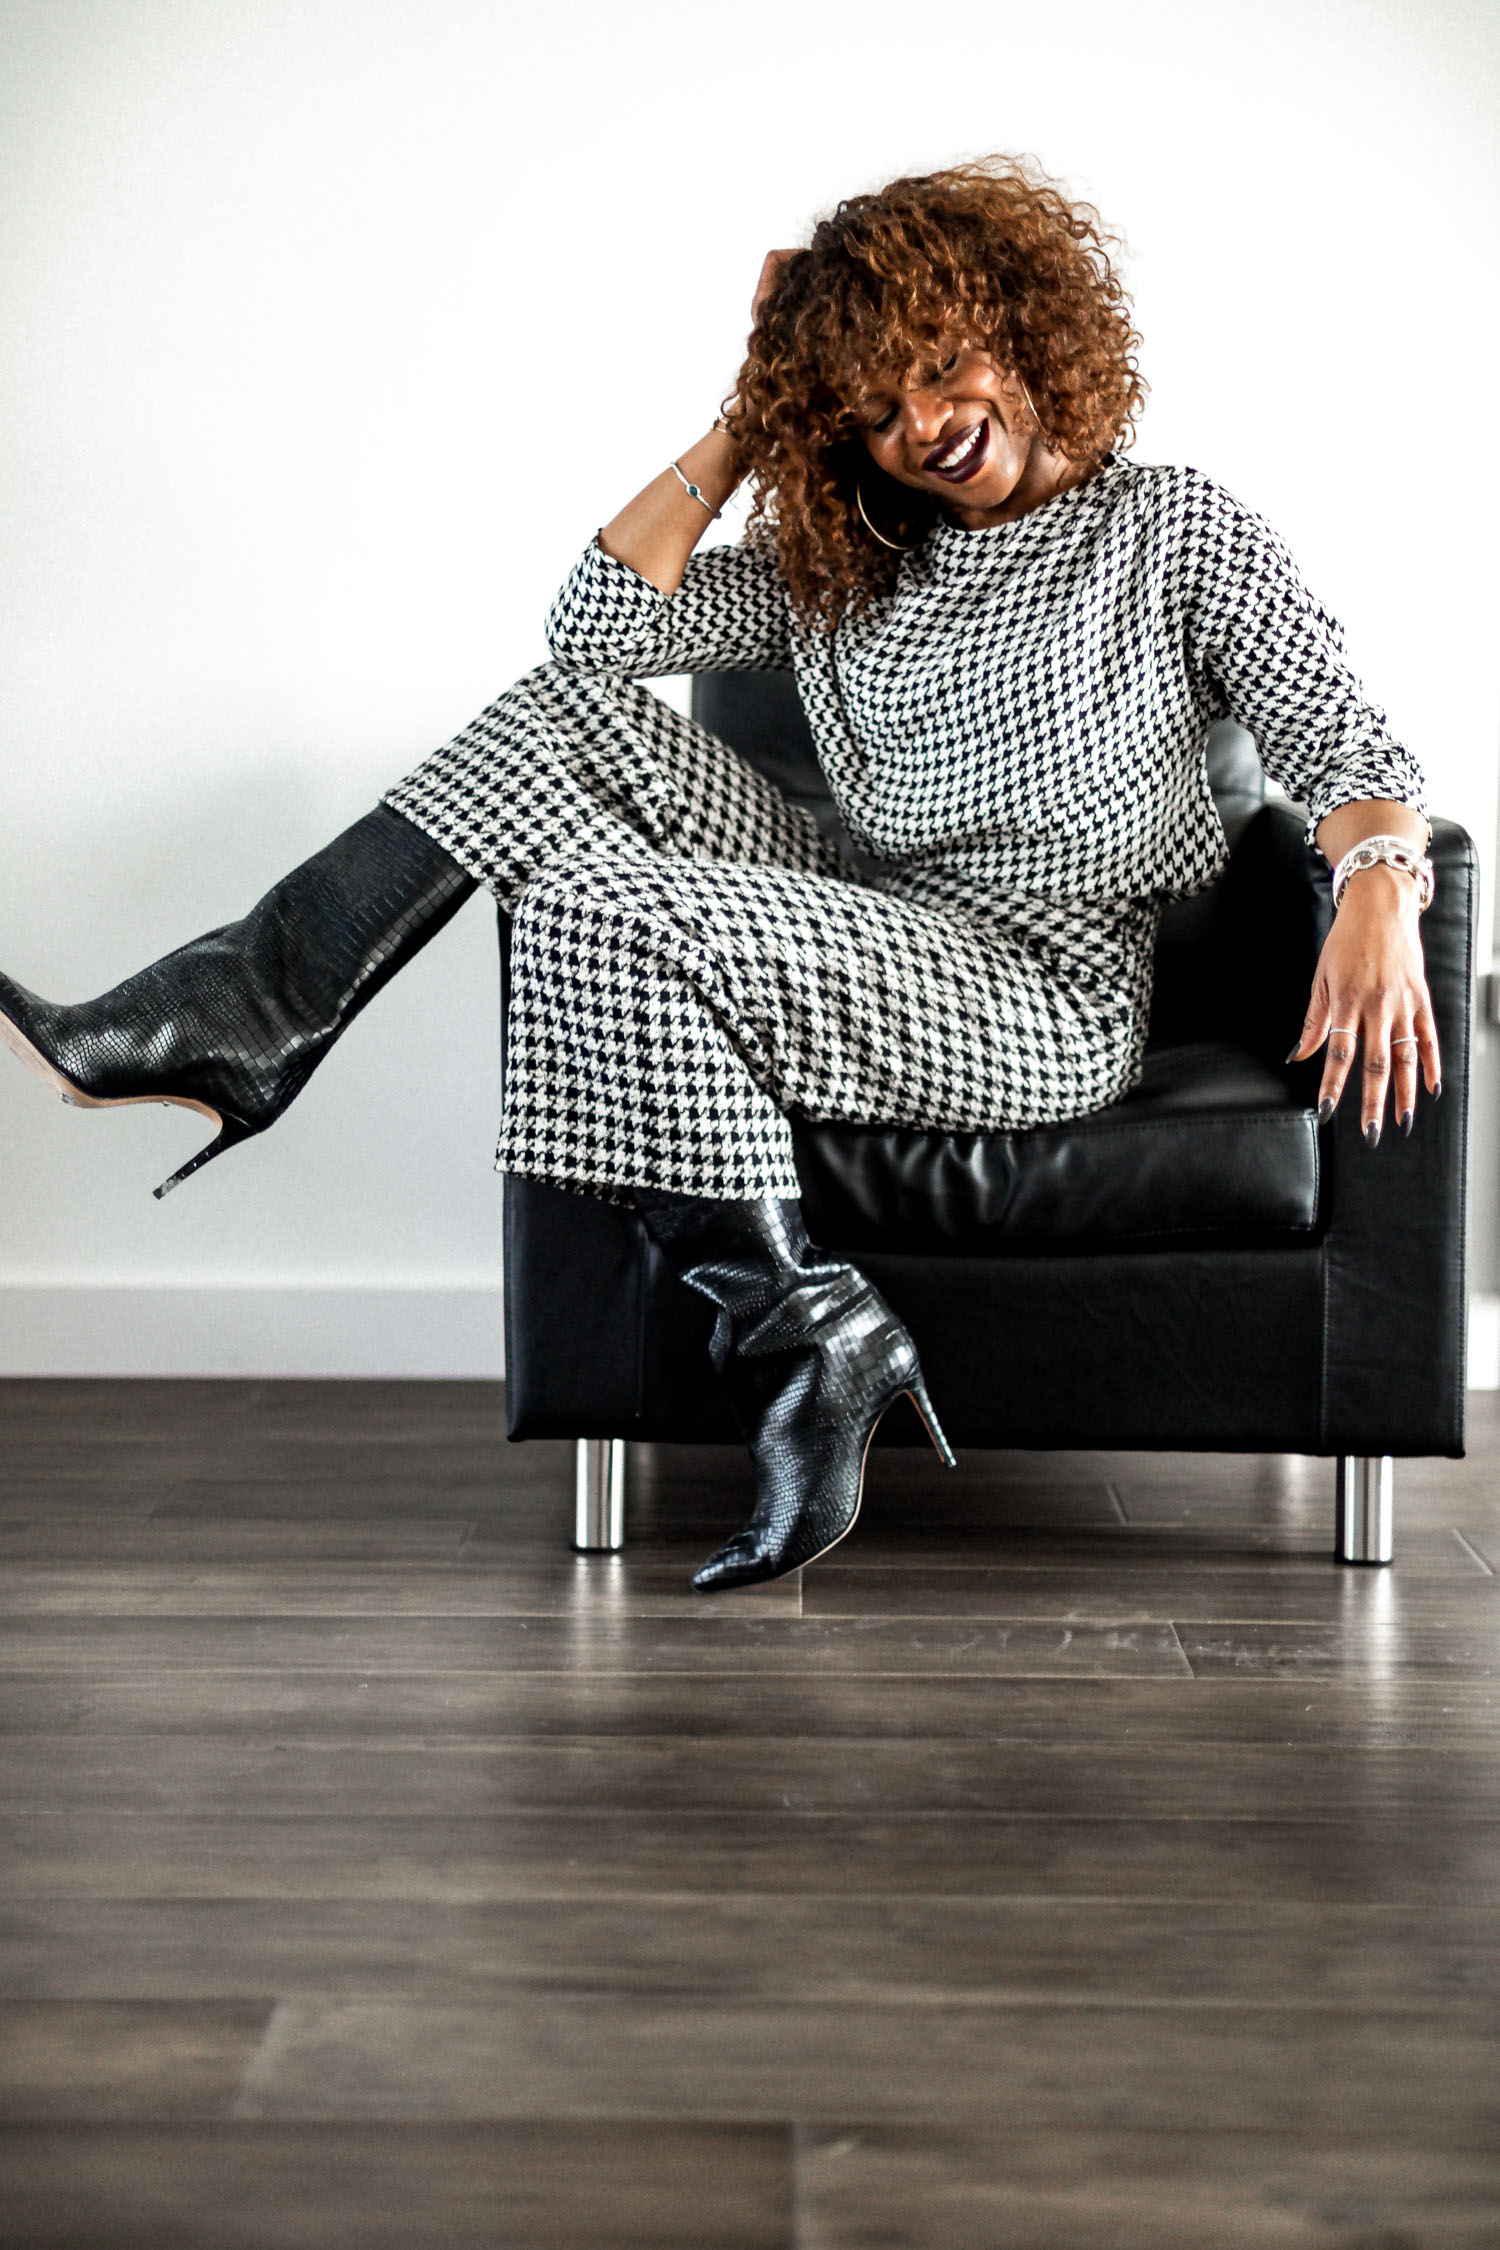 atlanta blogger monica awe-etuk wearing black and white houndstooth, how to style houndstooth, 5 things about me, about atlanta blogger, about top atlanta blogger, fashion and lifestyle blogger spills the tea